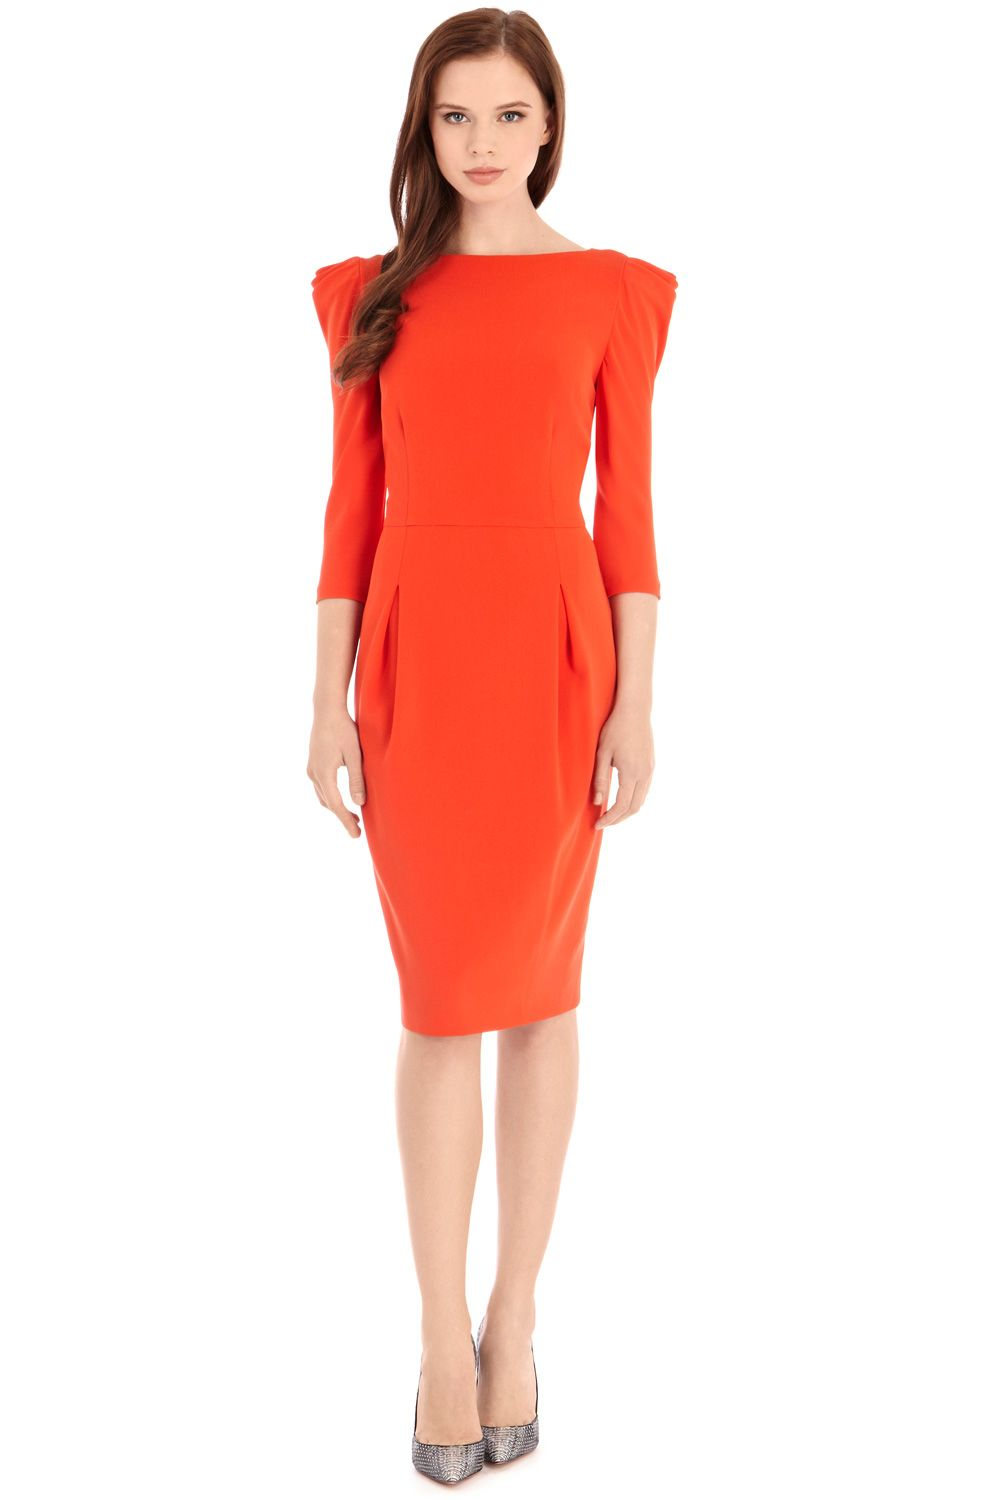 Nickell crepe dress